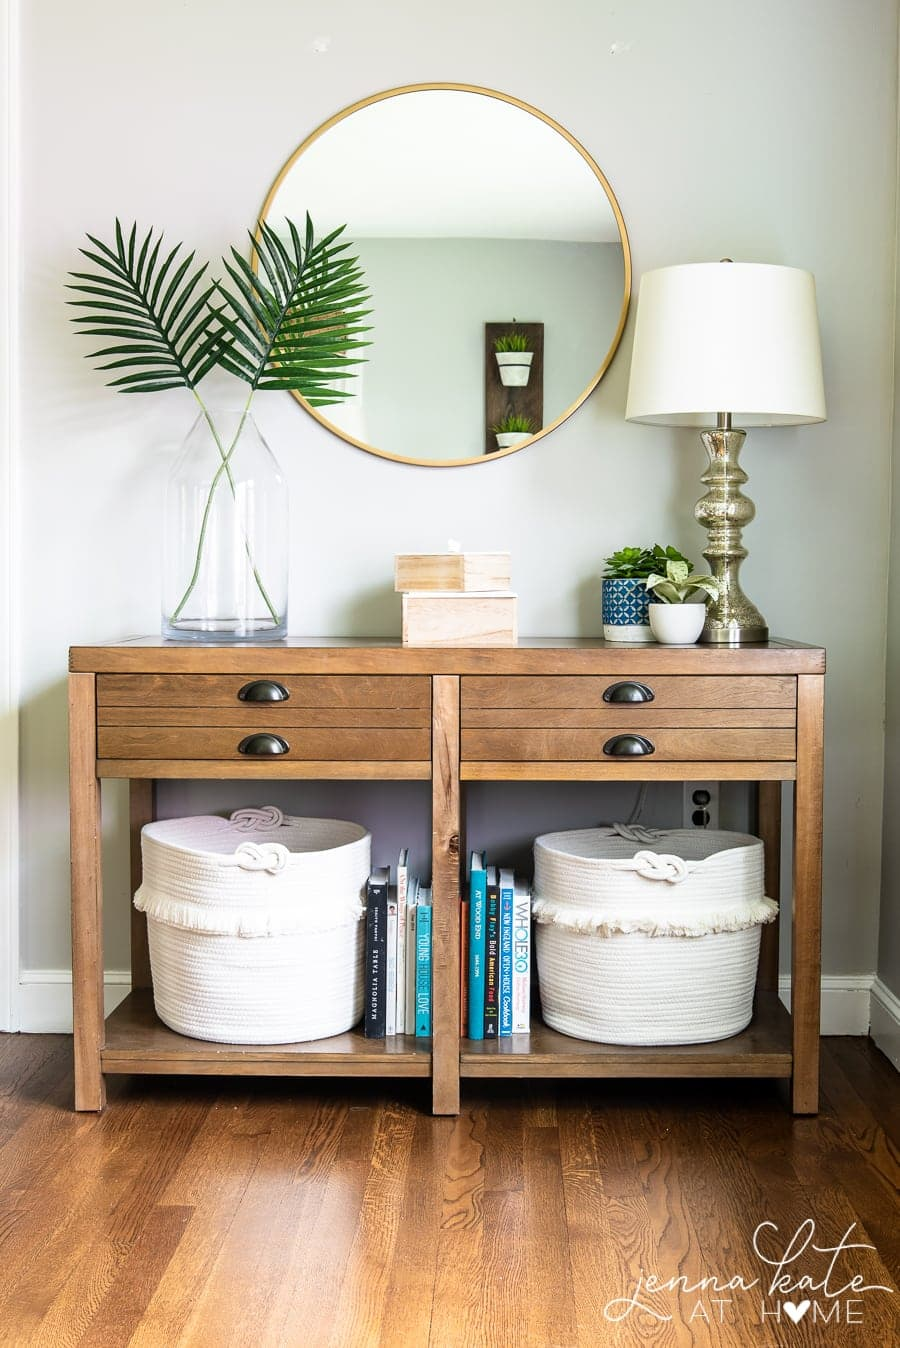 console table decorated for summer with palm fronds and white baskets underneath